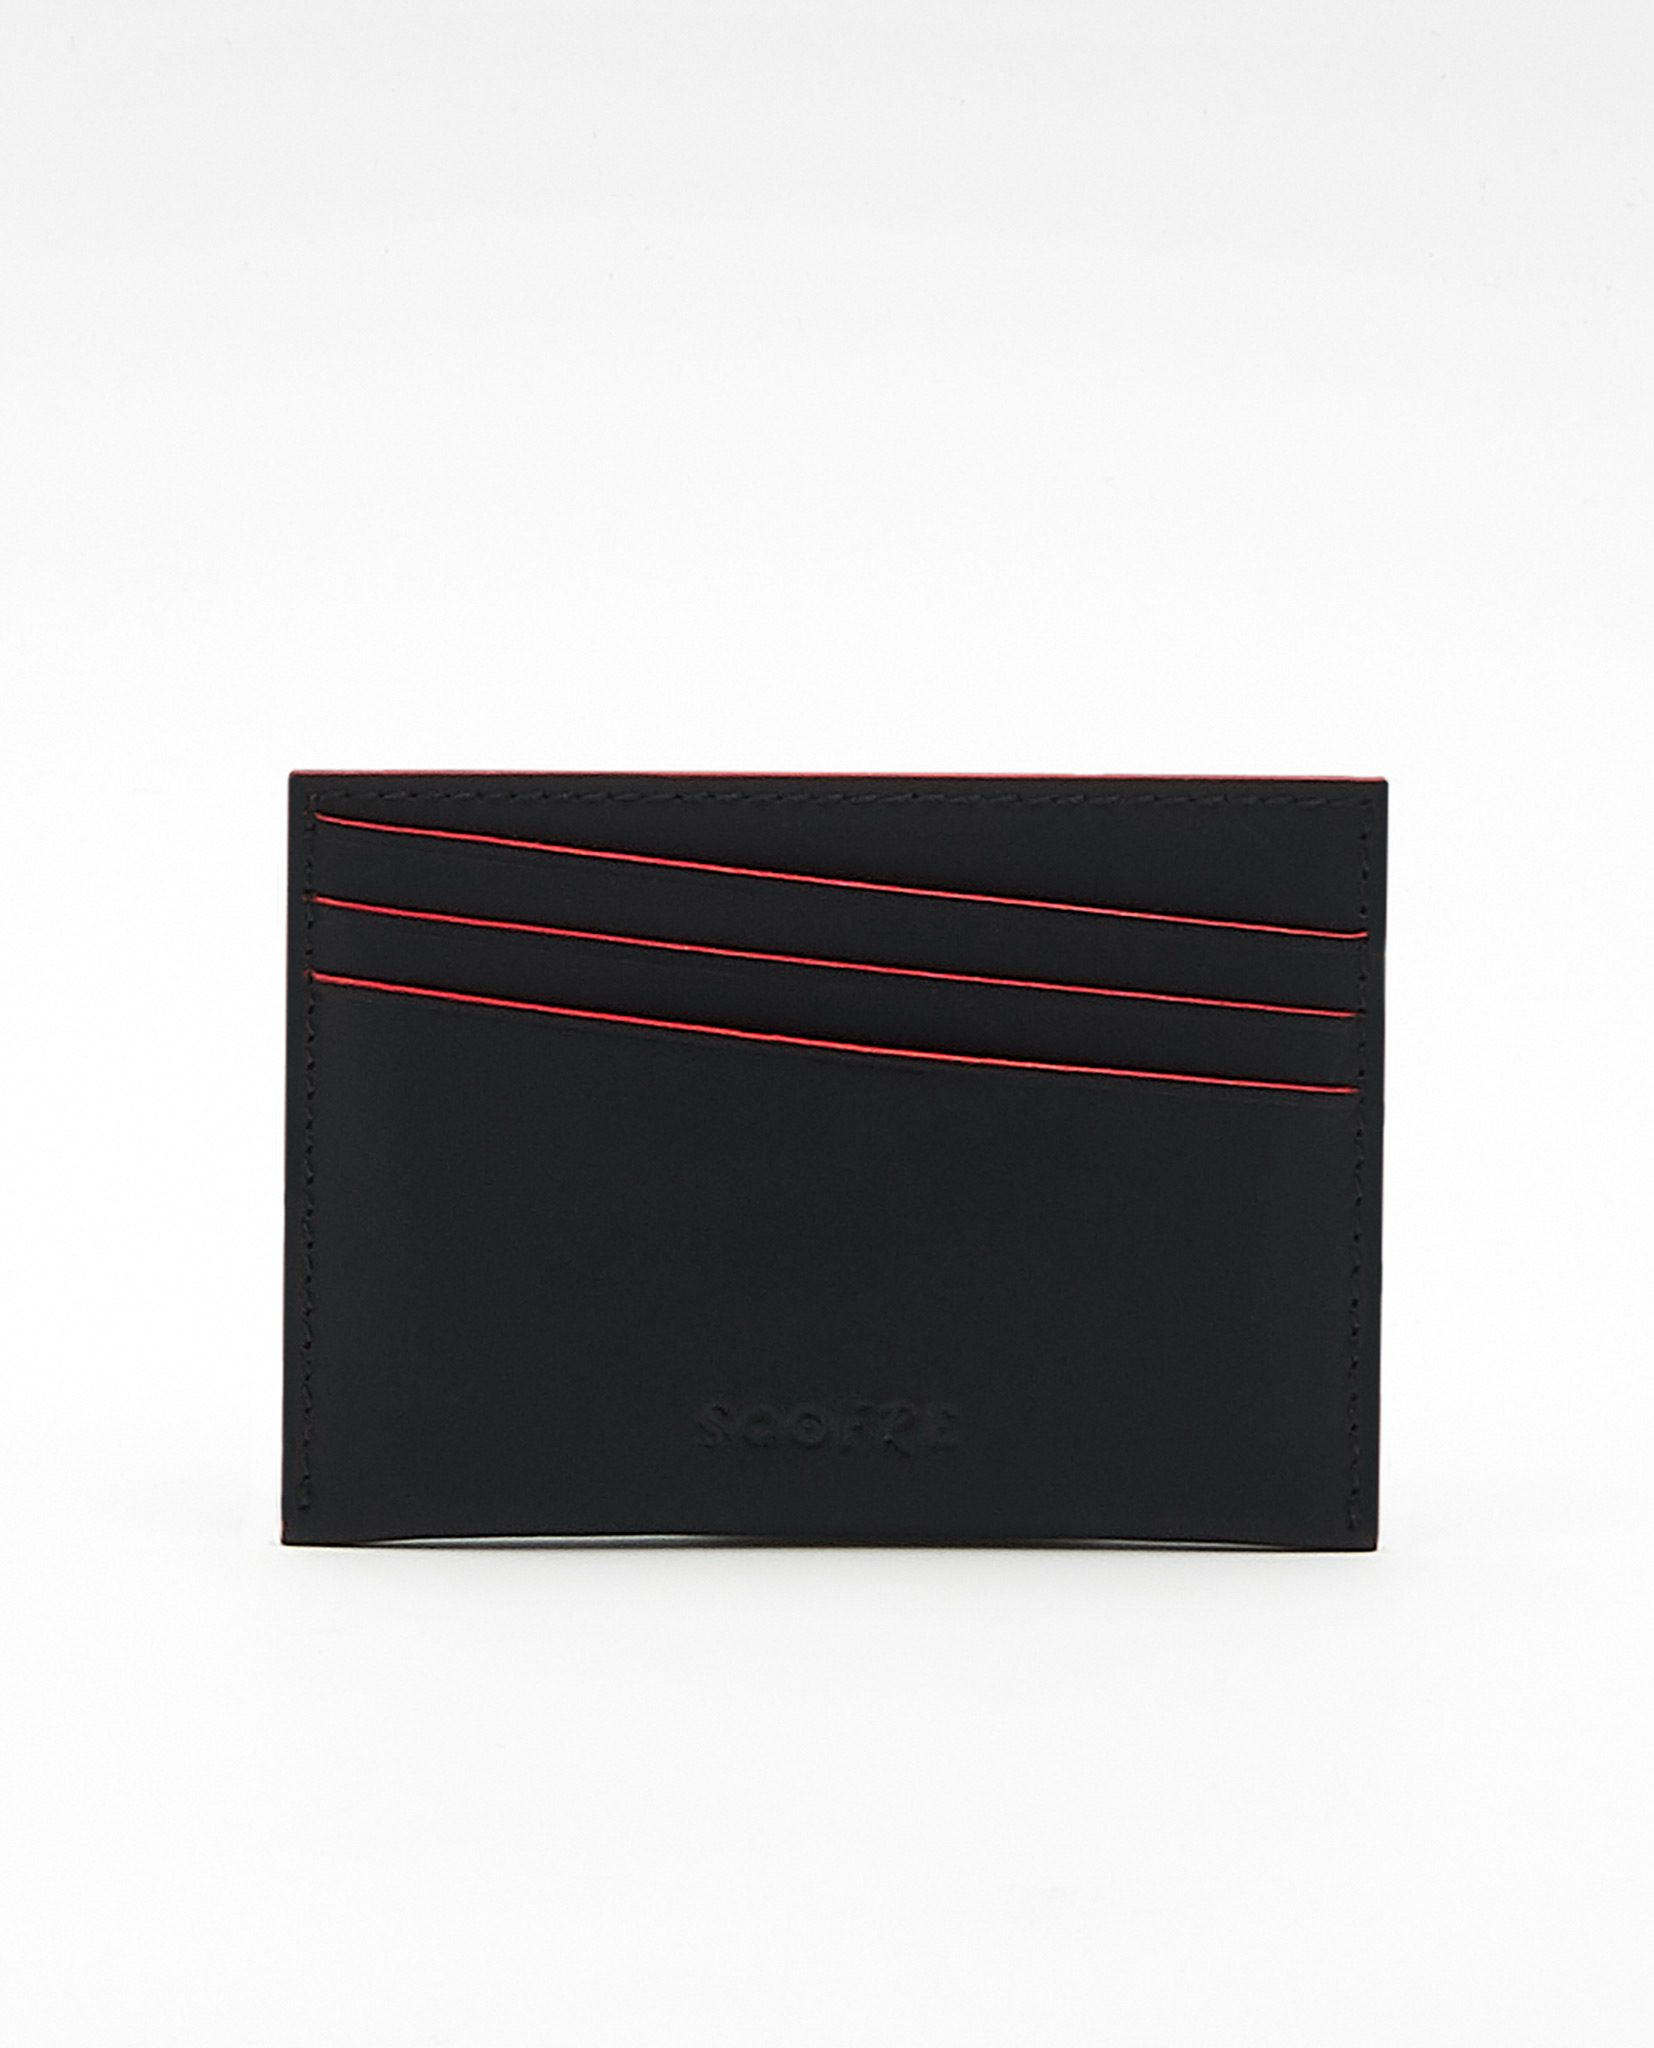 Soofre_Card-Holder_Black-Red_3